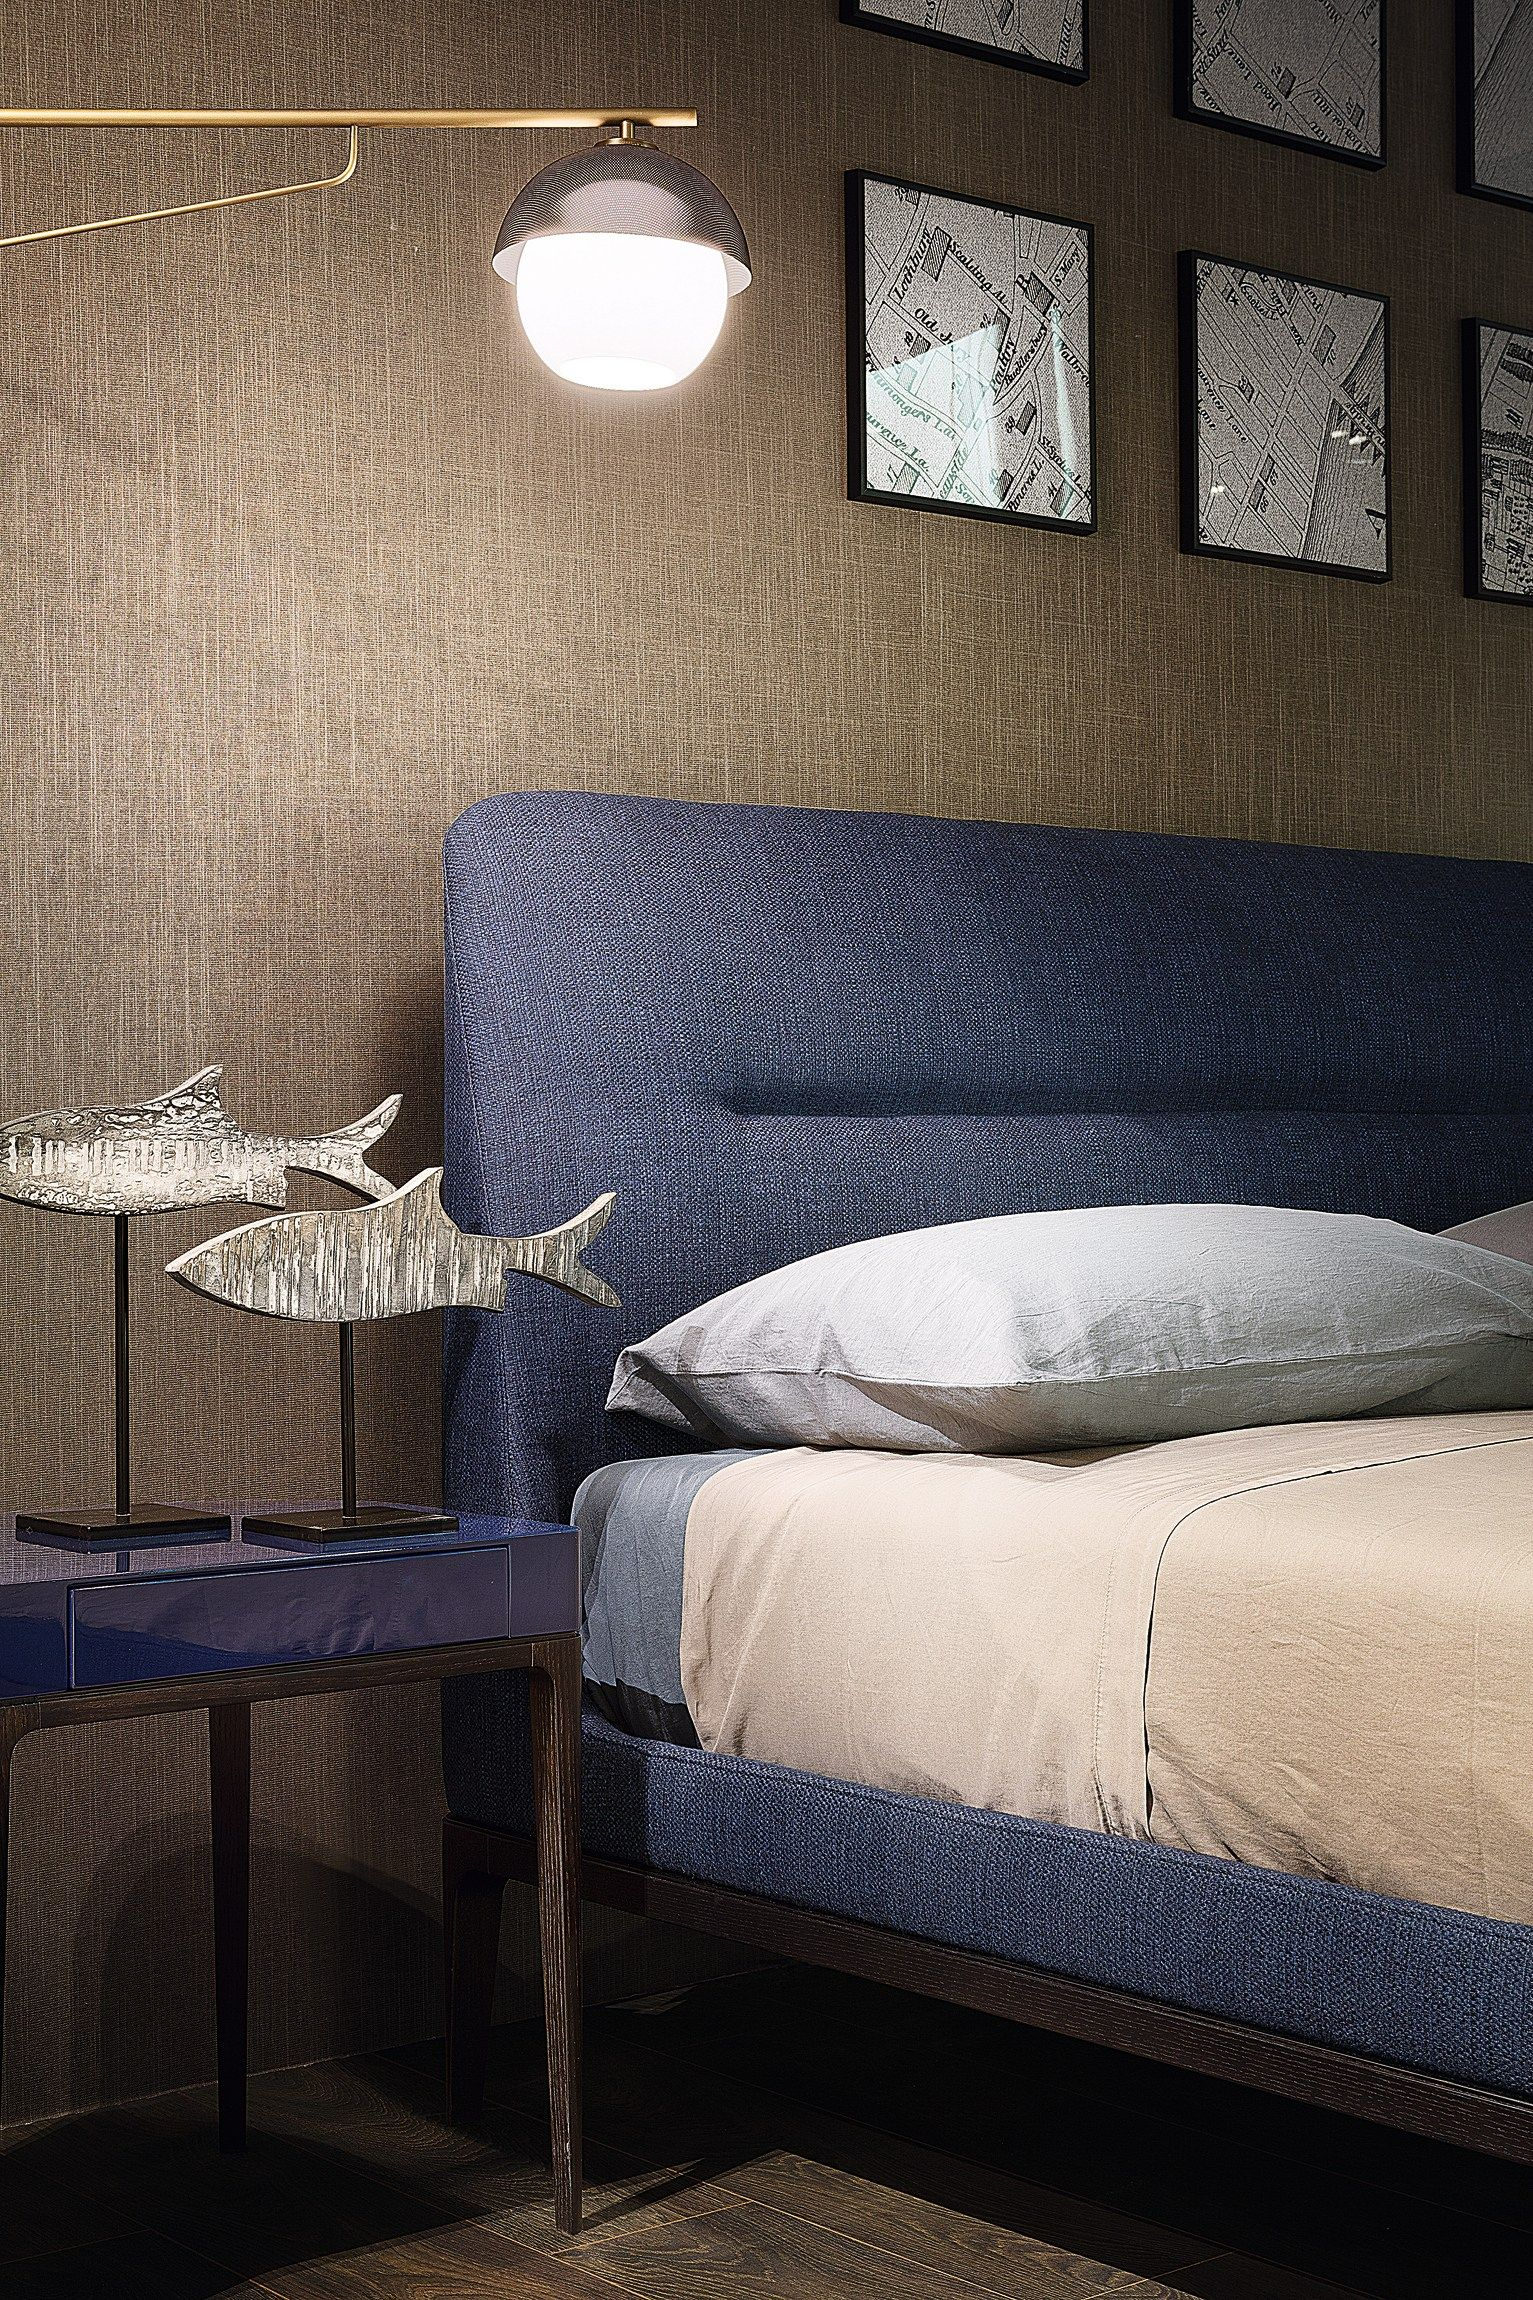 Camere Da Letto Lema.Fabric Double Bed With Upholstered Headboard Victoriano By Lema